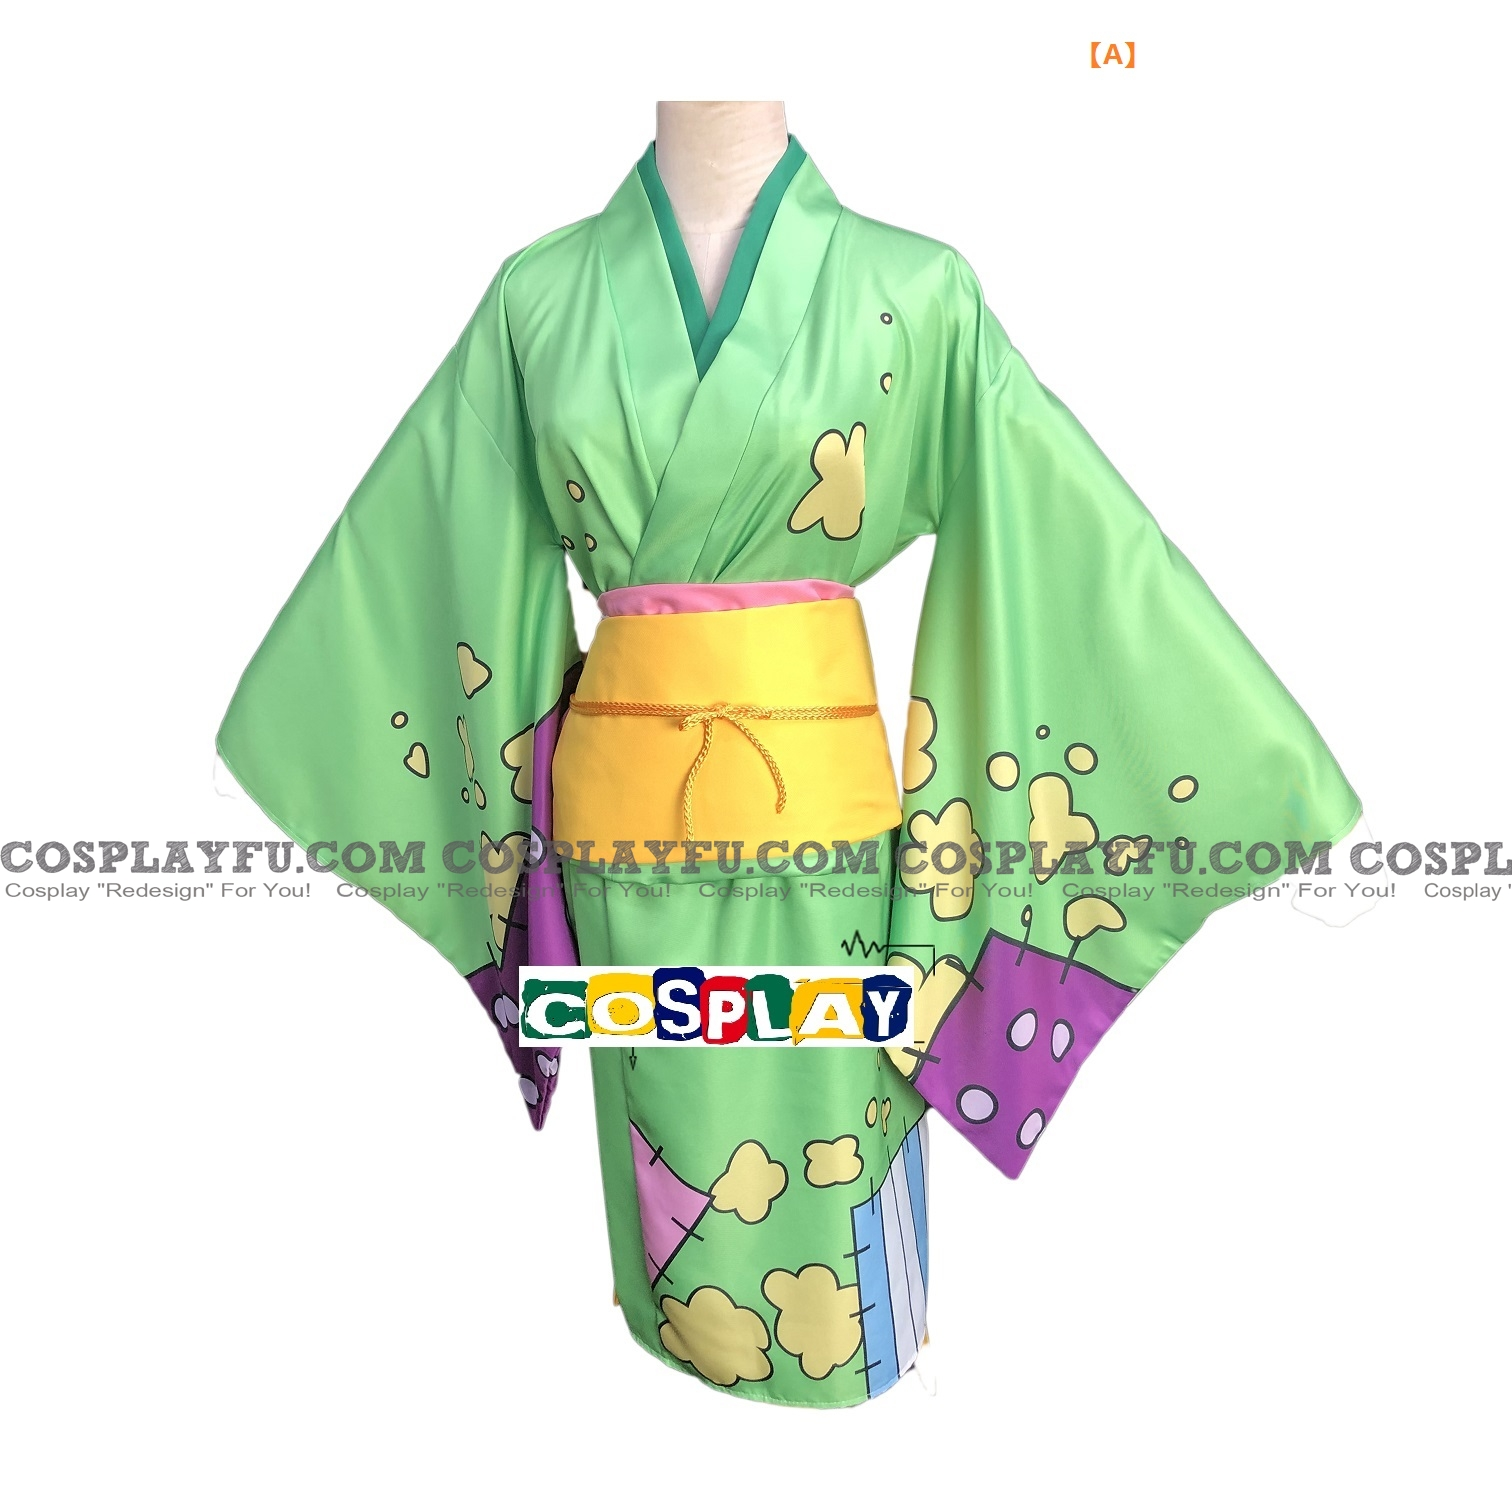 Otama Cosplay Costume from One Piece